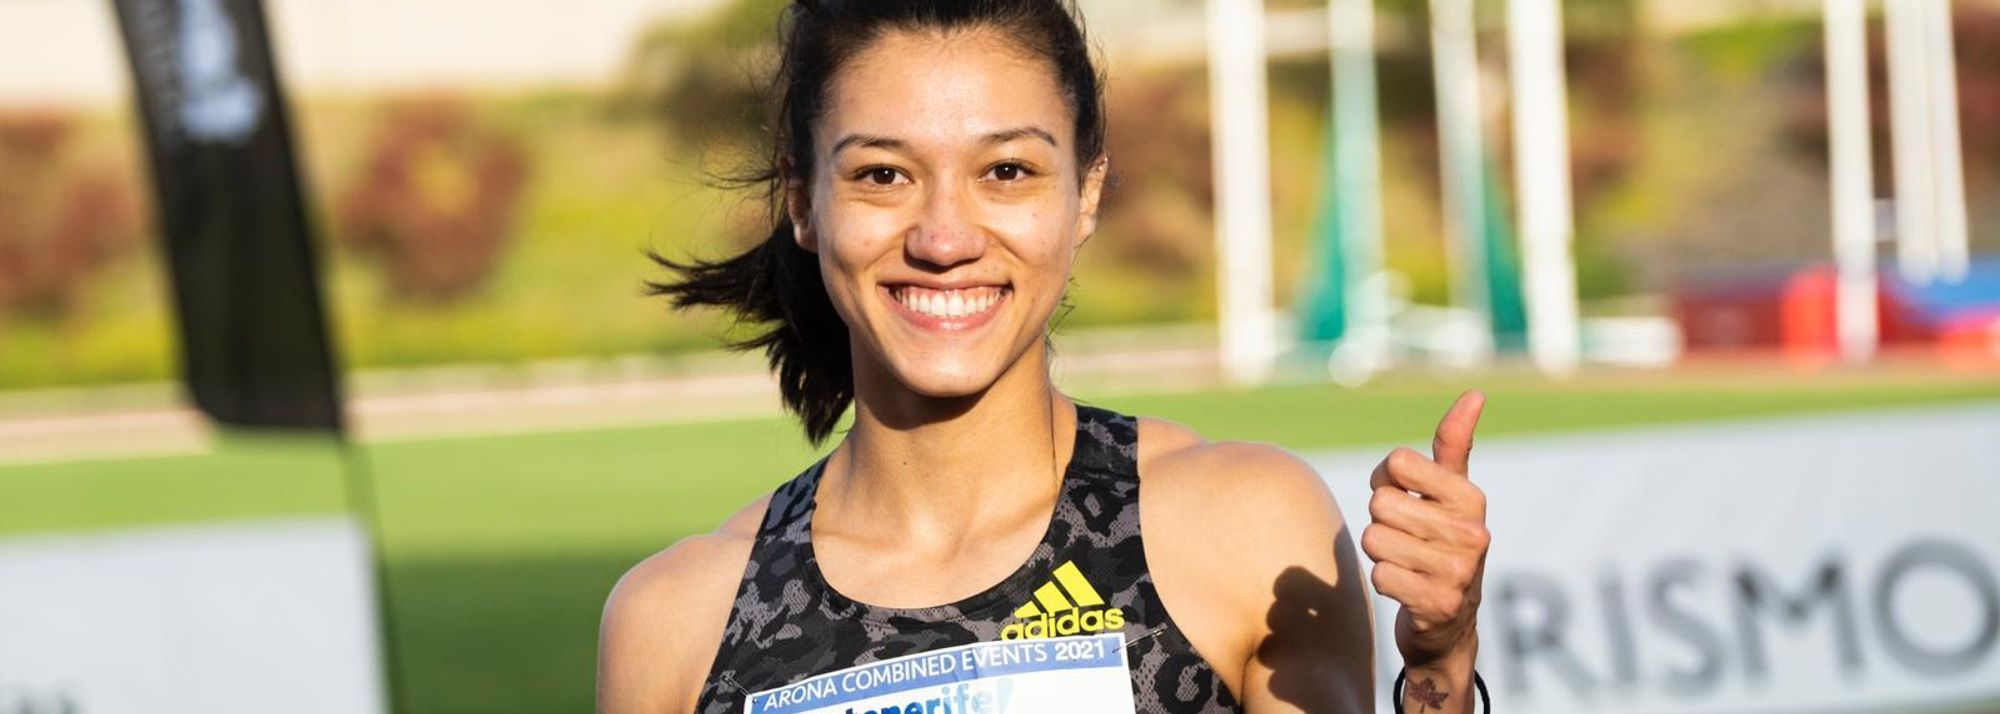 China's Zheng Ninali and Jiri Sykora of the Czech Republic came out on top at the Arona Combined Events meeting, the Spanish leg of the World Athletics Challenge – Combined Events, held this weekend in the Canary Islands.